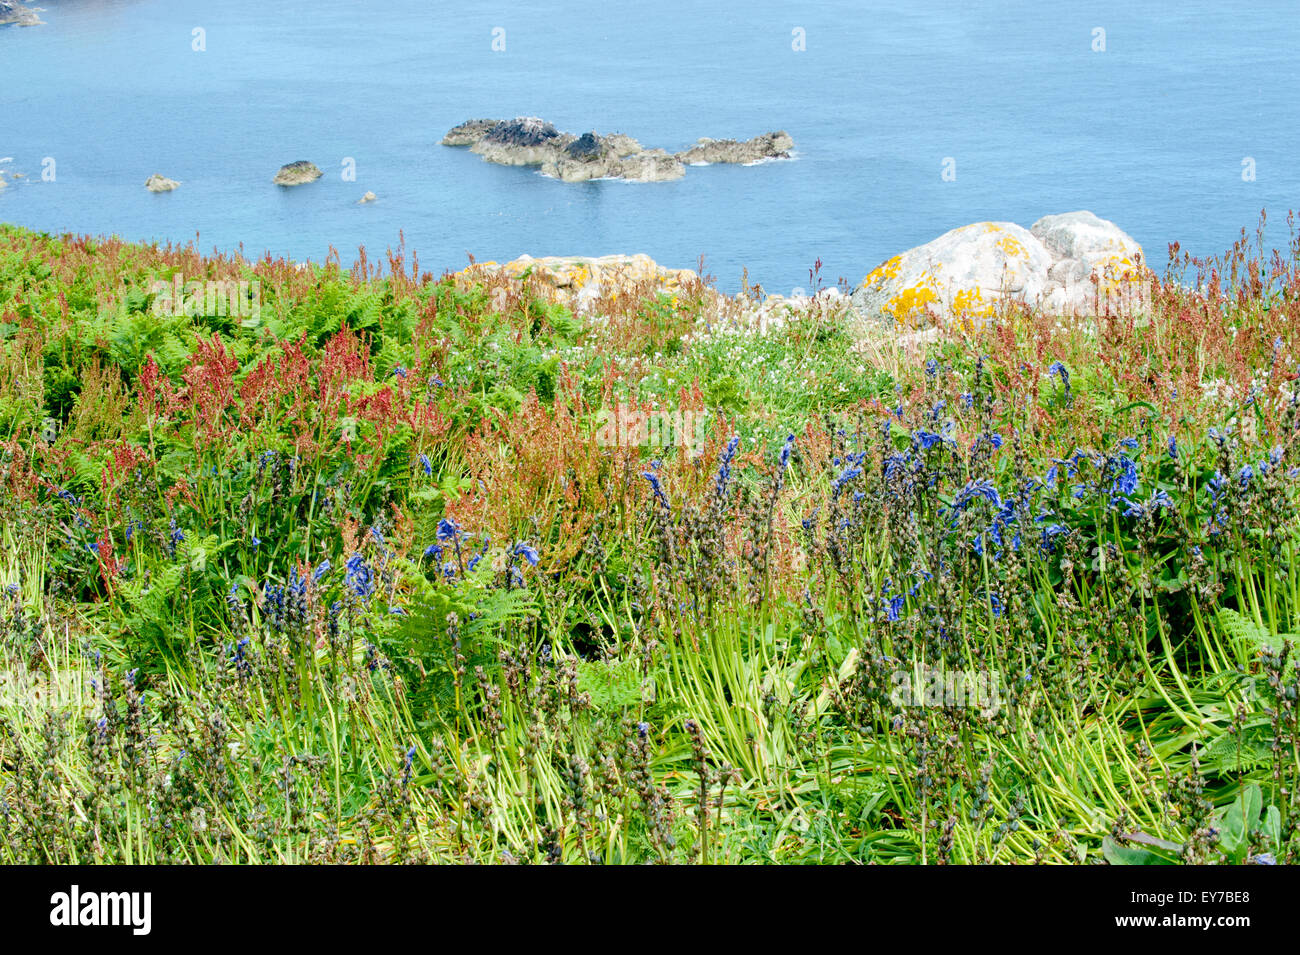 Summer on the coast in Co Wexford, Ireland - Stock Image